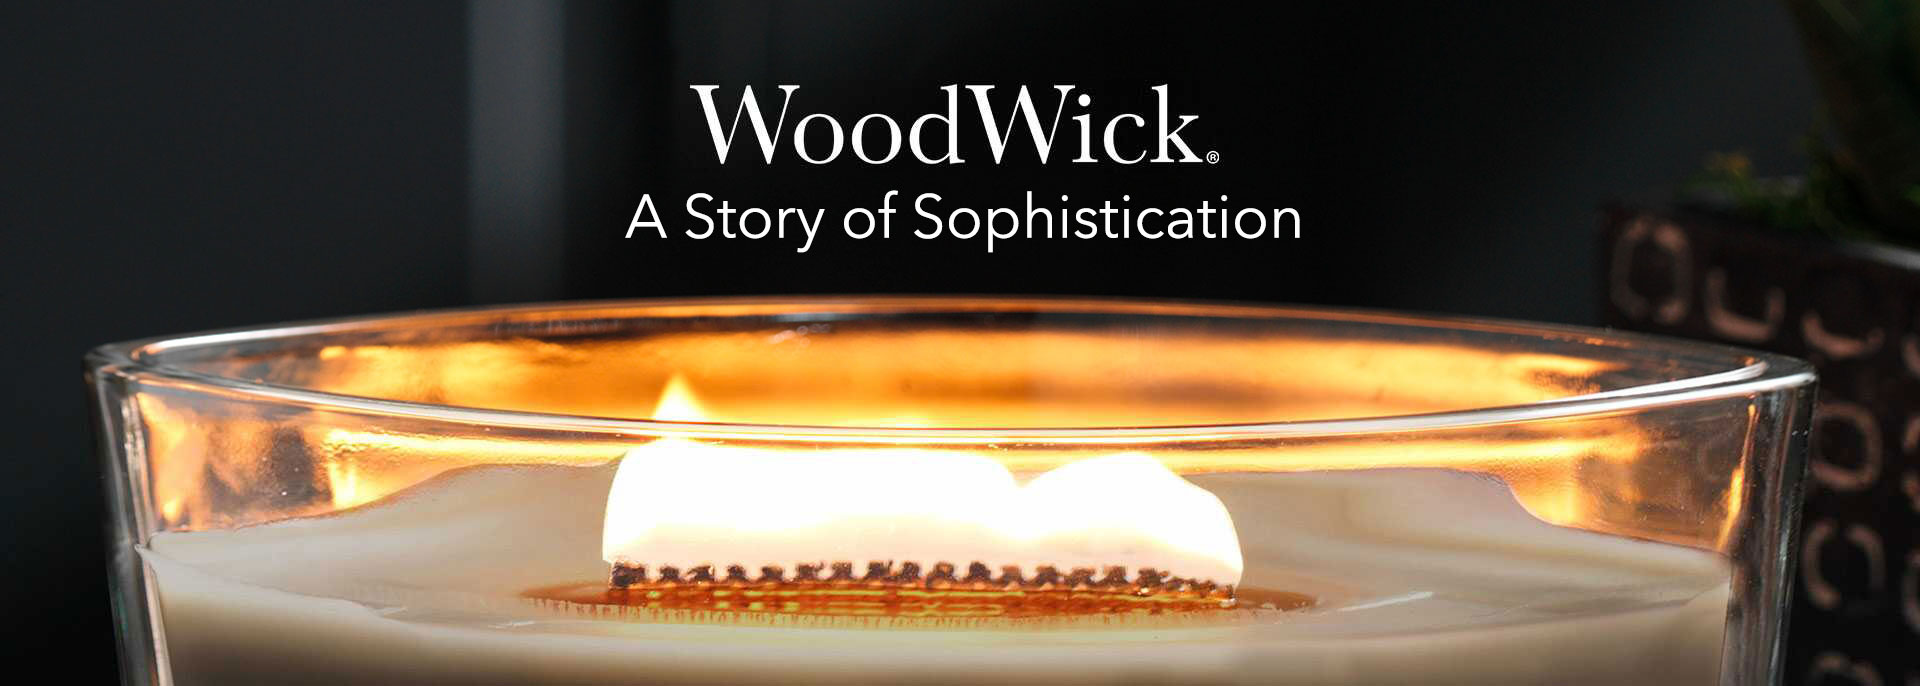 WoodWick® A Story of Sophistication